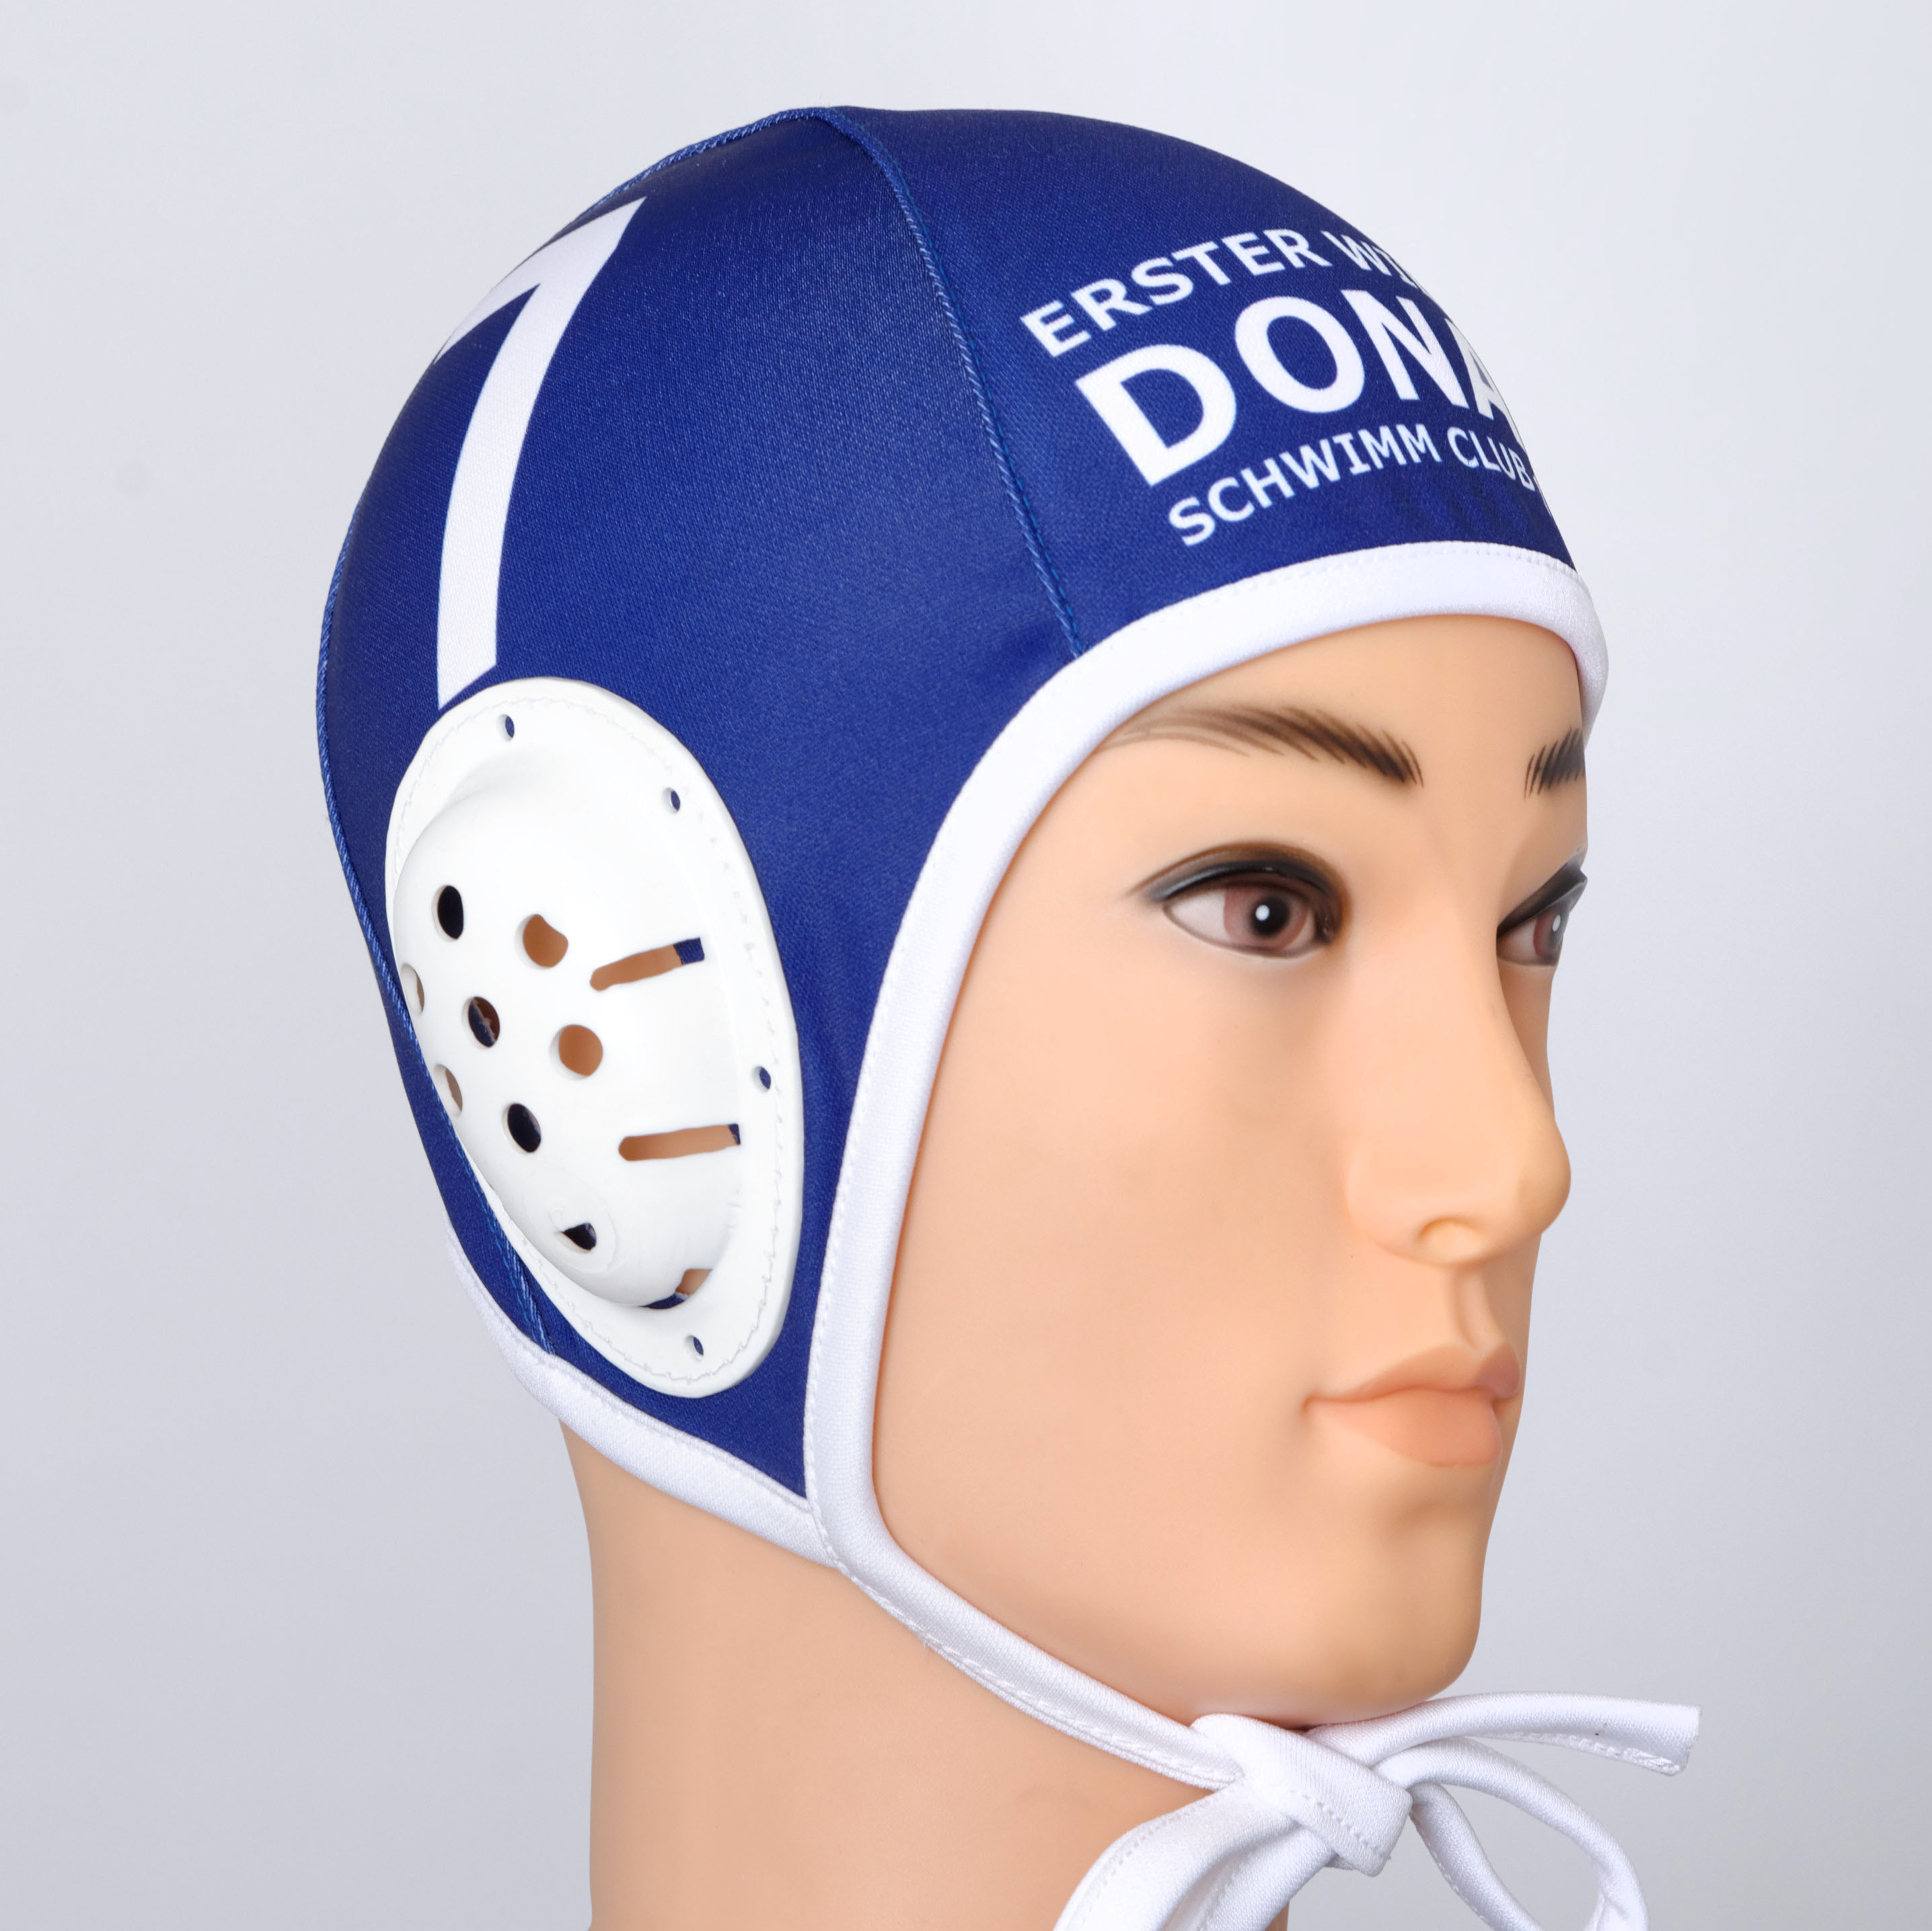 Blue water polo cap.